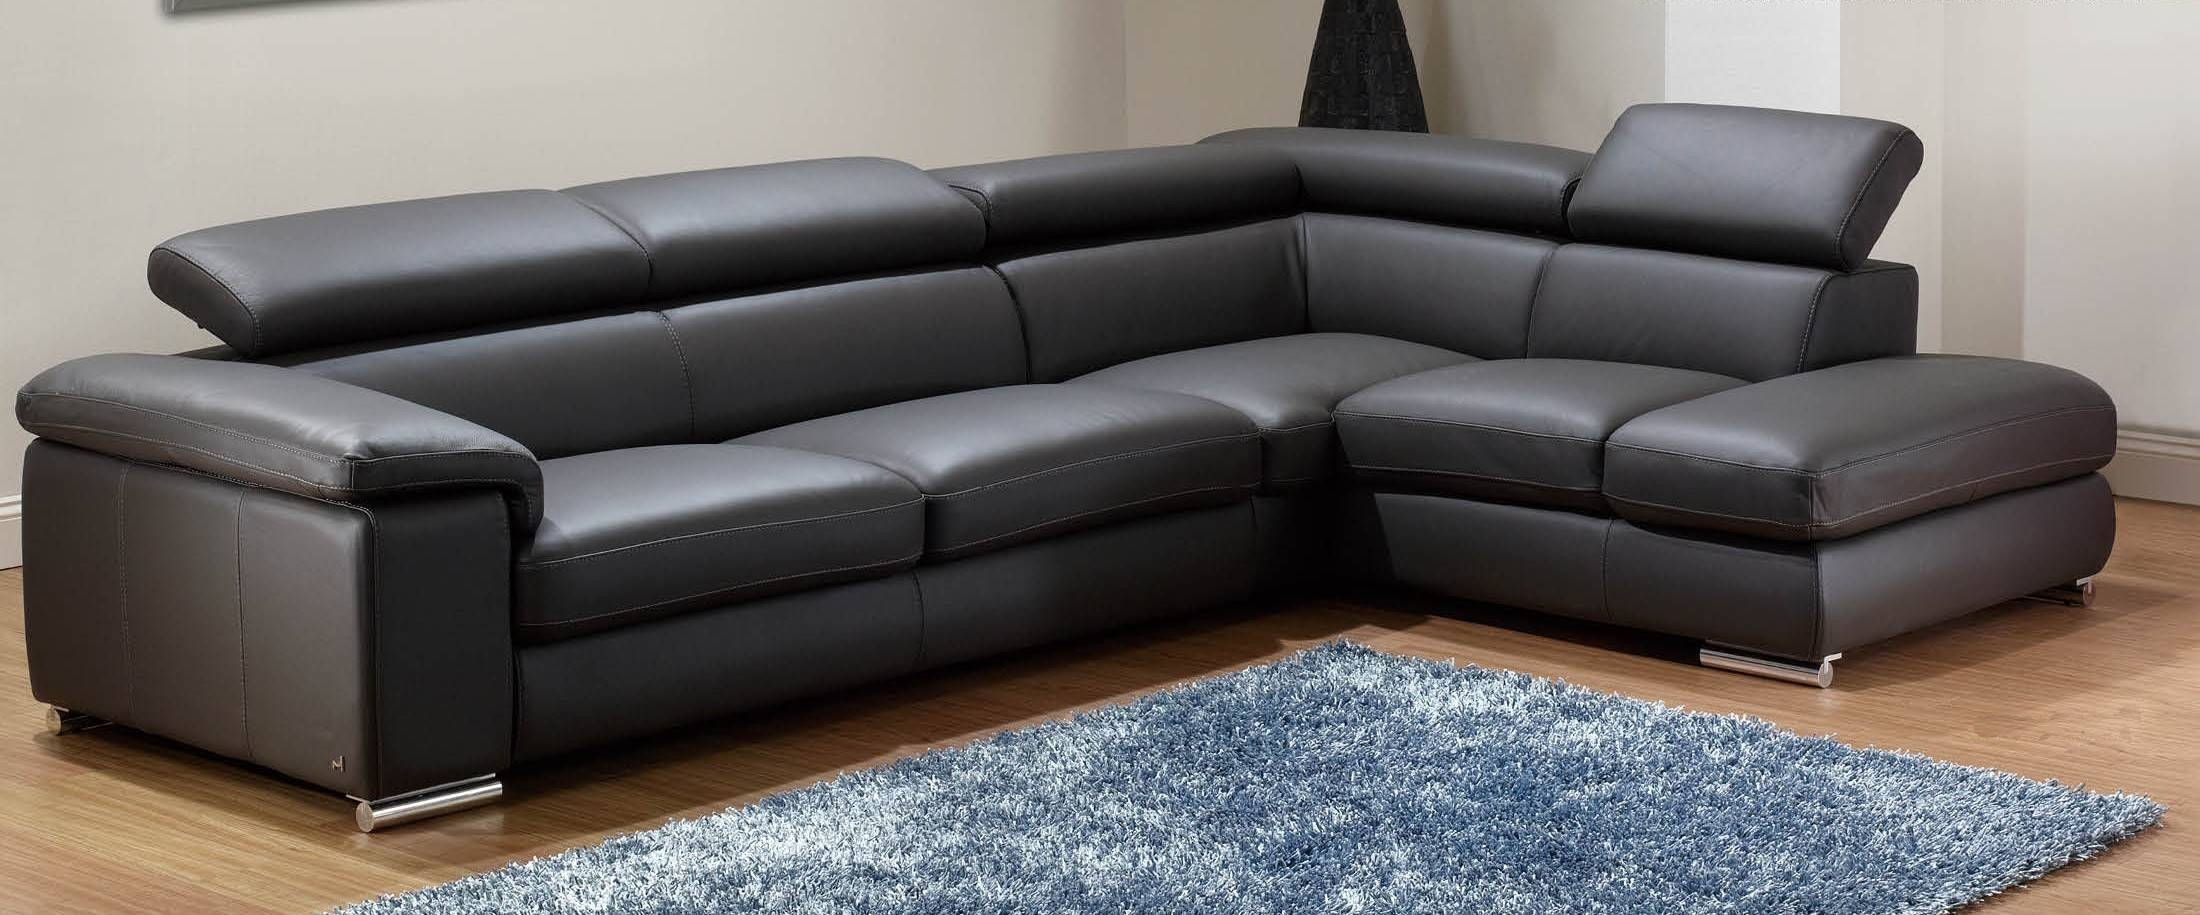 Sofas Center : Modern Sectional Sofas Cheap Way Black Sofa Under for Cheap Black Sofas (Image 25 of 30)